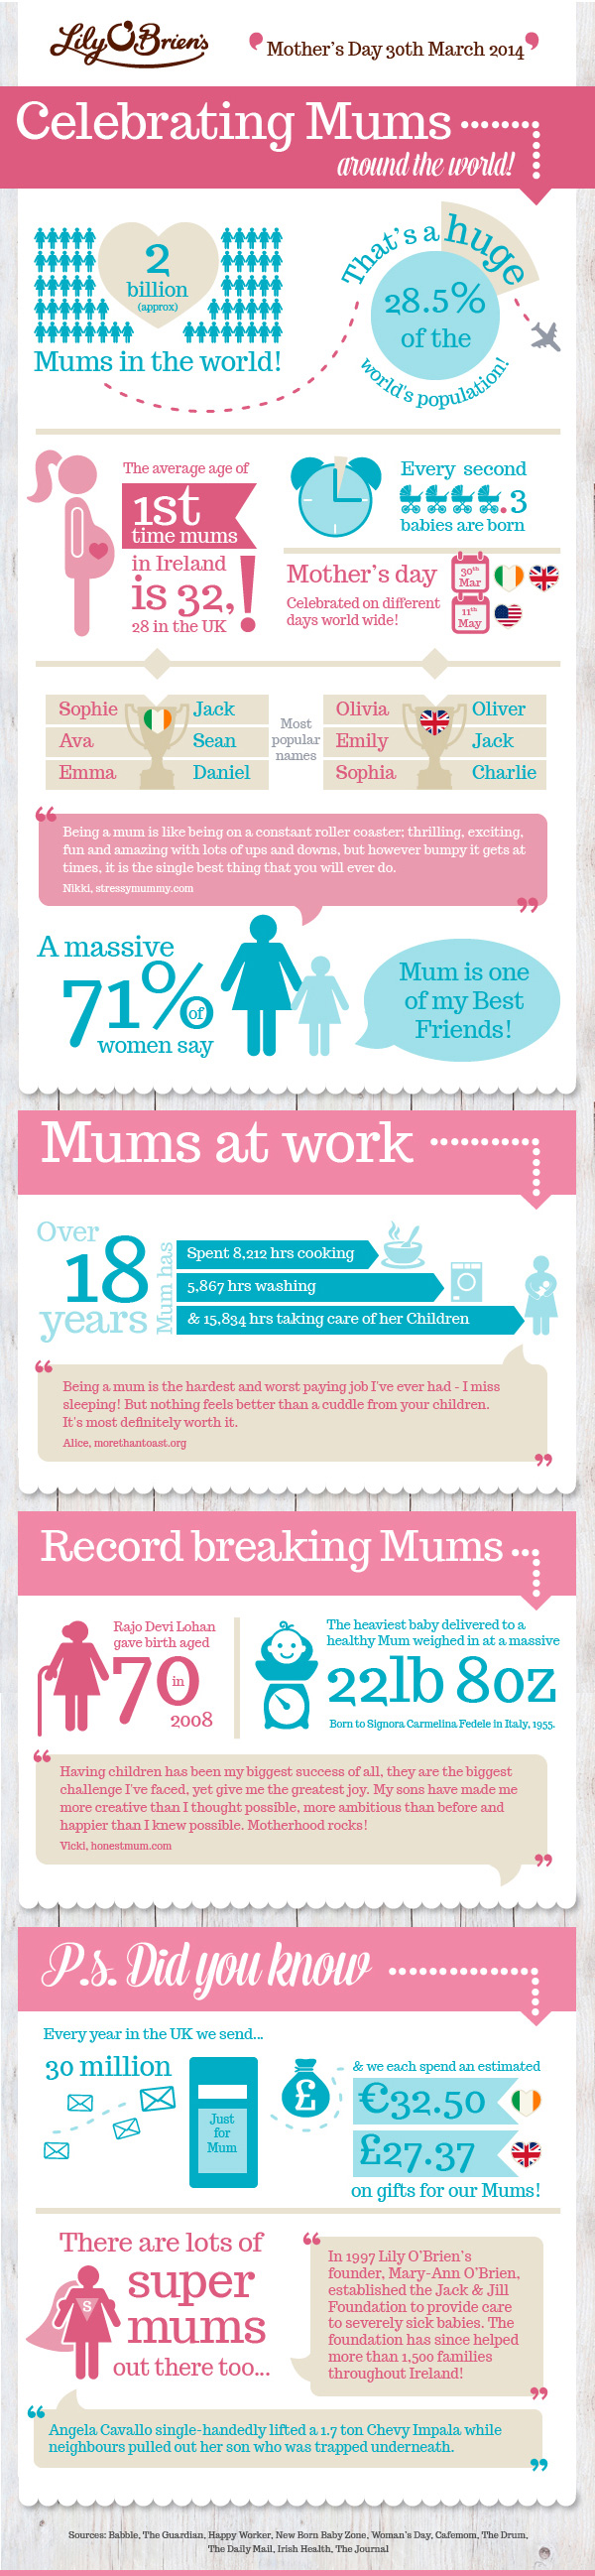 Celebrating Mums Around the World